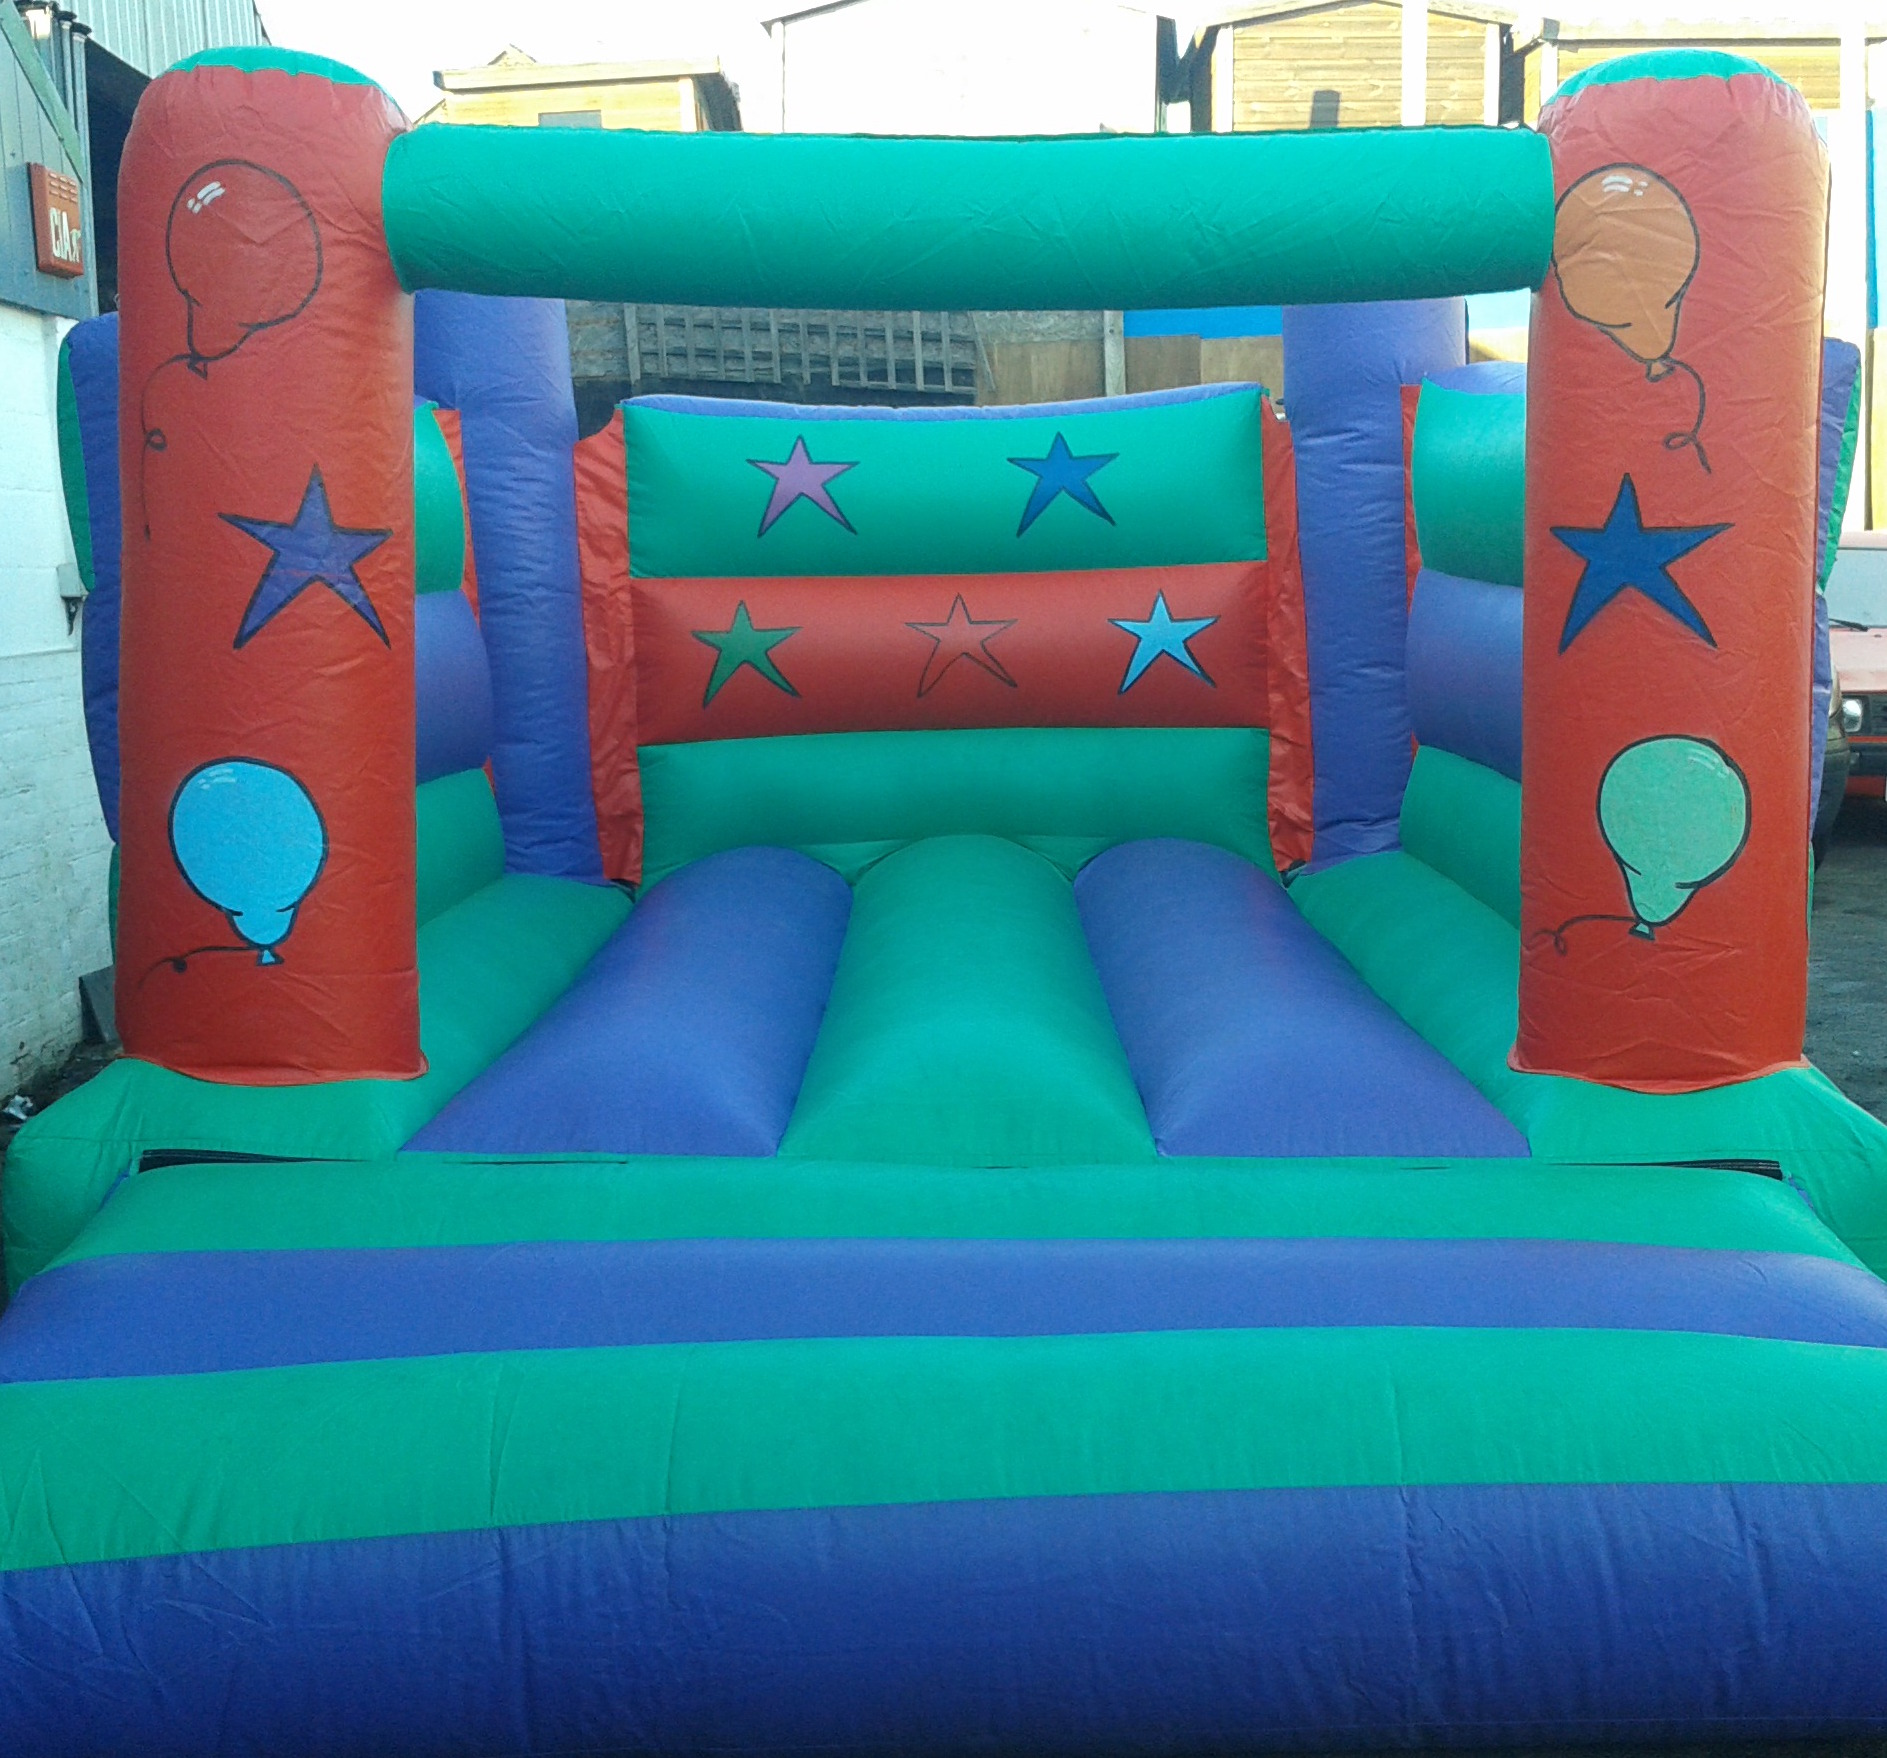 Low Ceiling Bouncy Castle